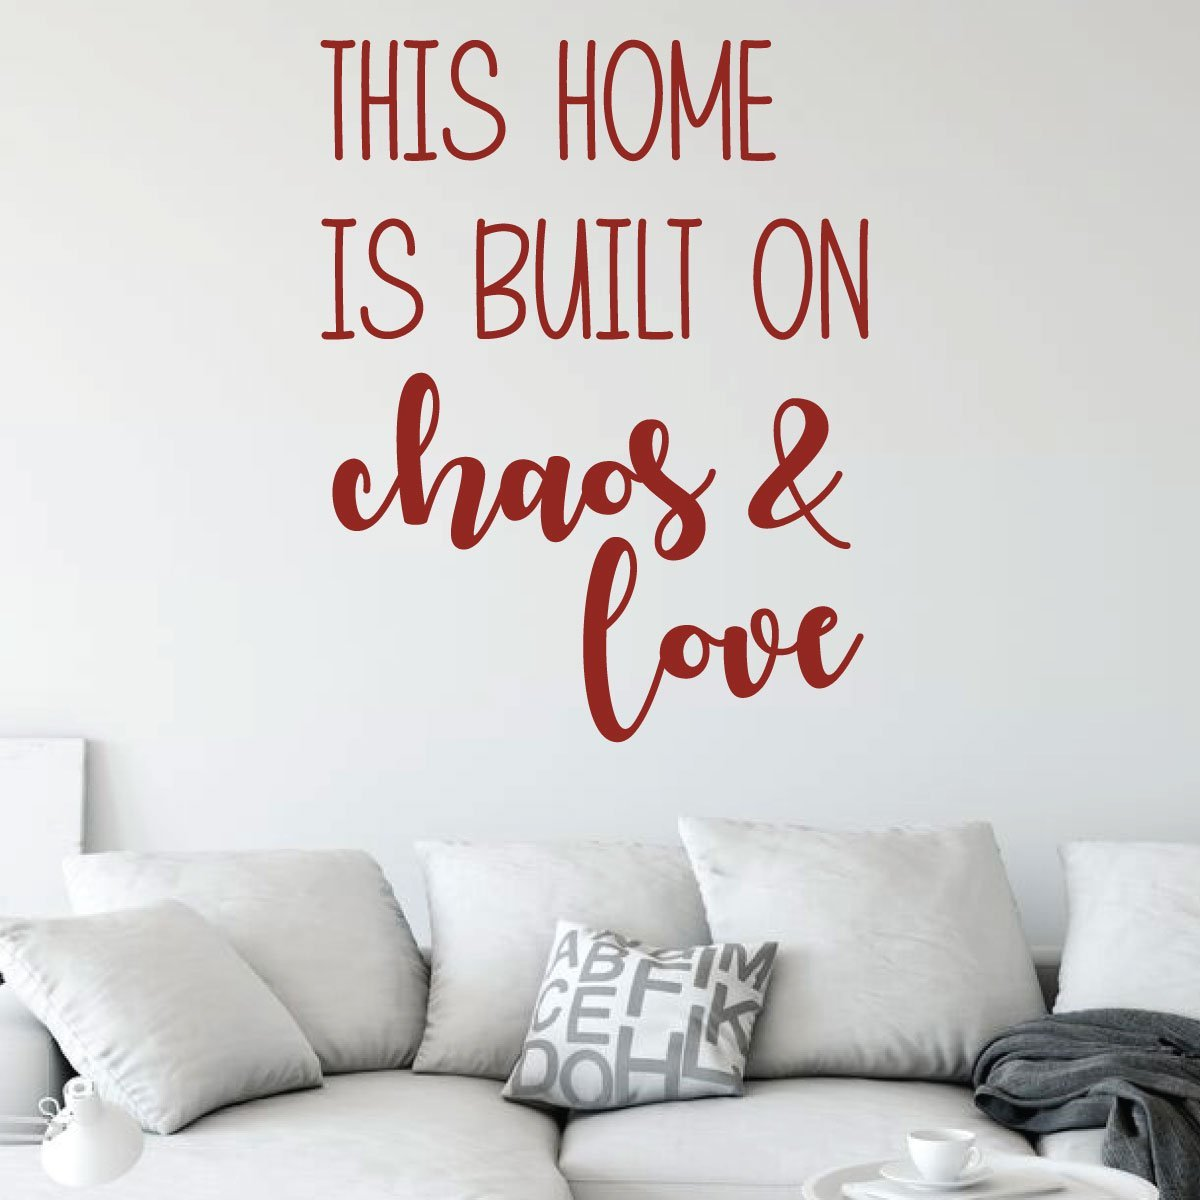 We Call It Family Home Decor House Living Children Welcome Family Entry Hall Vinyl Decal Wall Art Decor Sticker Some Call It Chaos